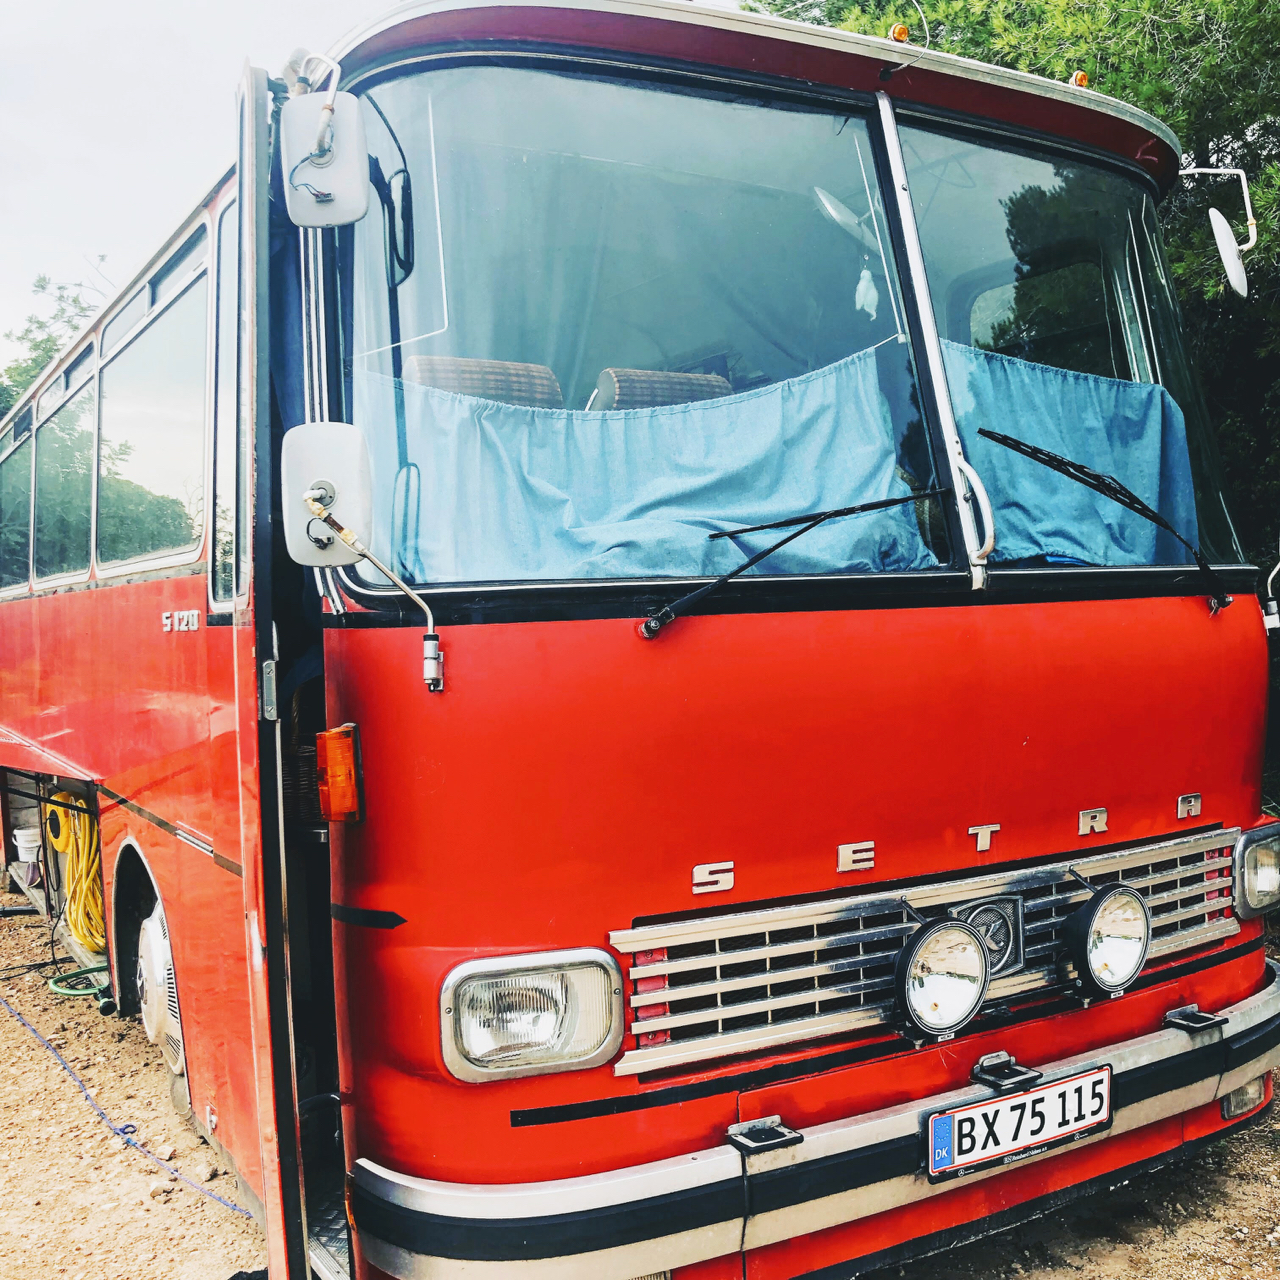 The bus was supposed to feel like a home on wheels. Little did we know how much the concept of home would change for us, once we started our journey.